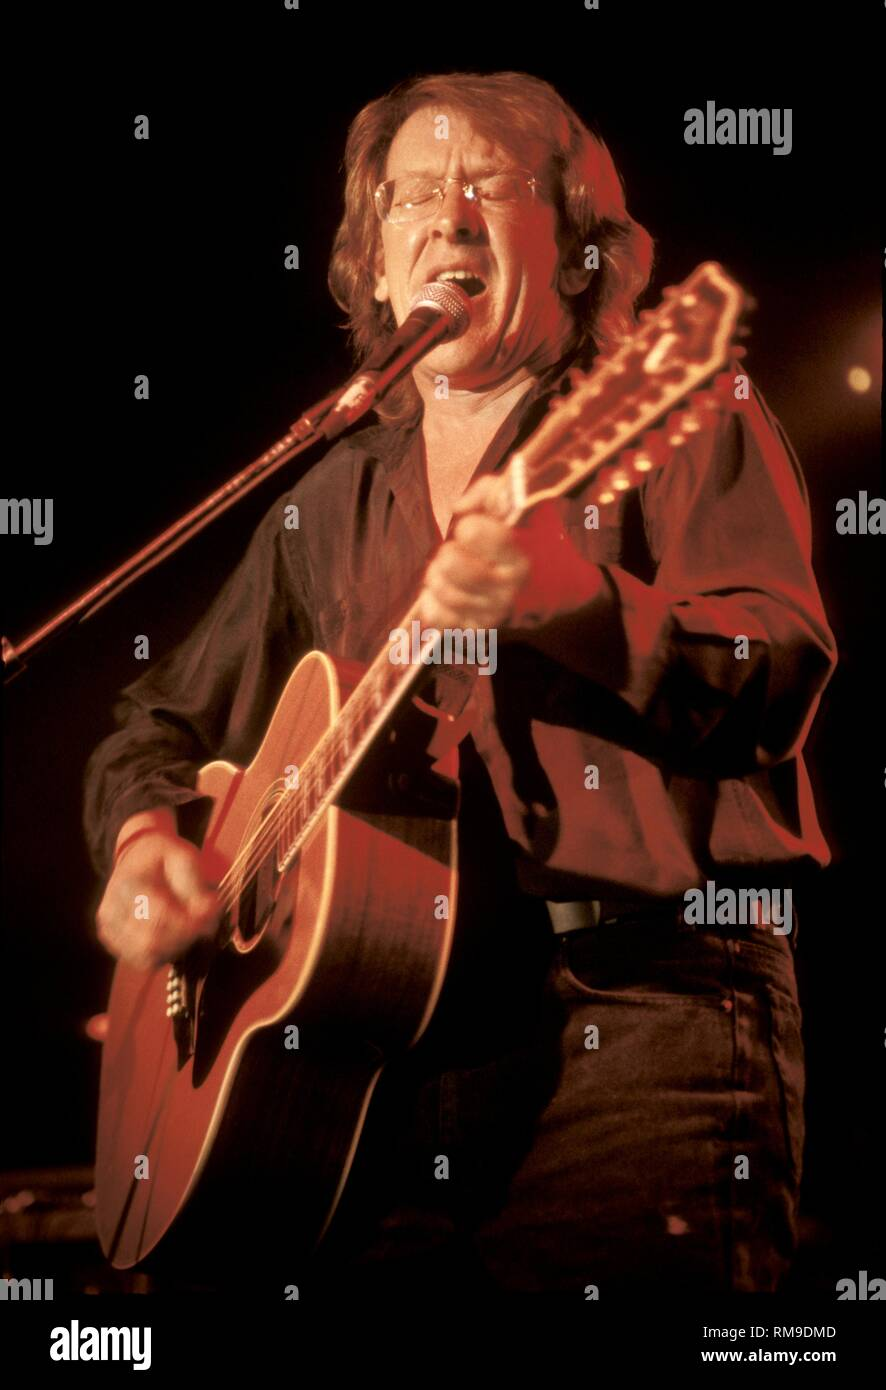 Guitarist singer & songwriter Paul Kantner of the Jefferson Starship is shown performing on stage during a 'live' concert appearance. - Stock Image